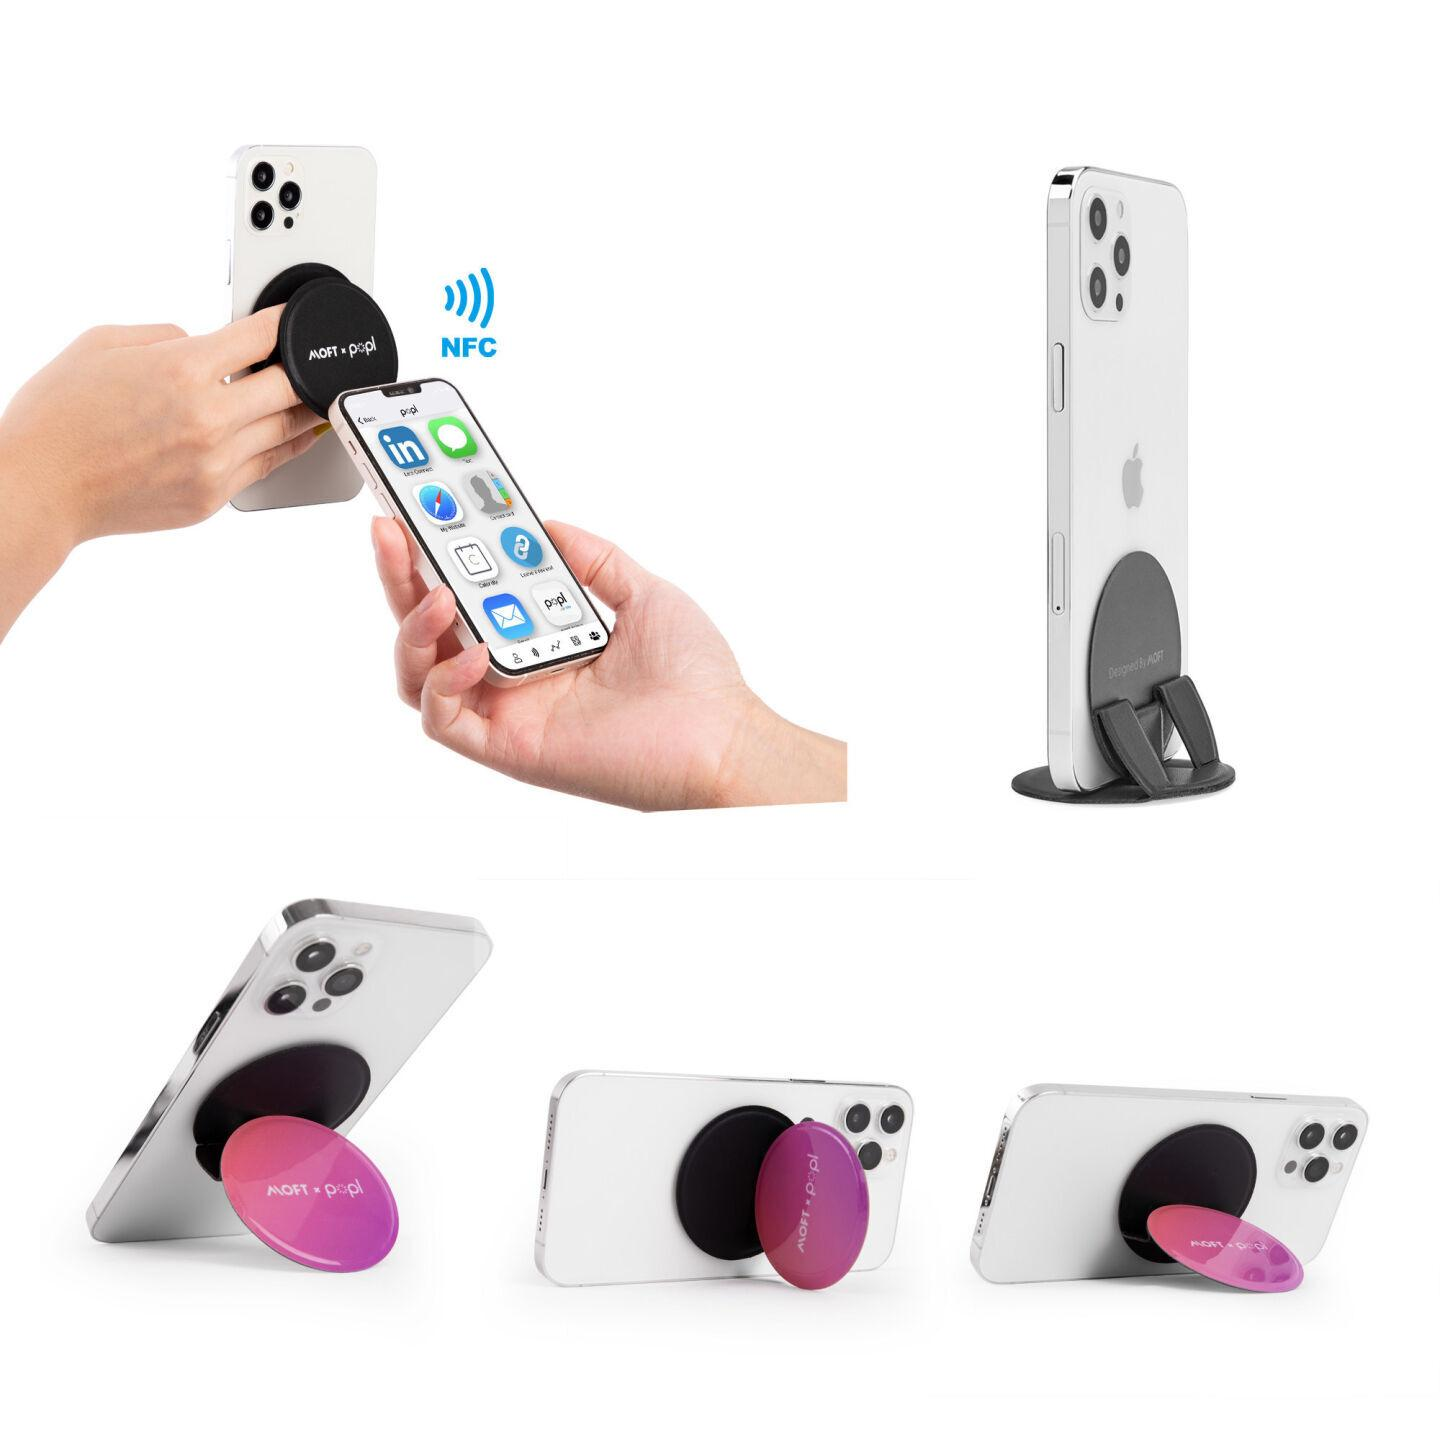 The MOFT x Popl is a convenient stand and communications device.